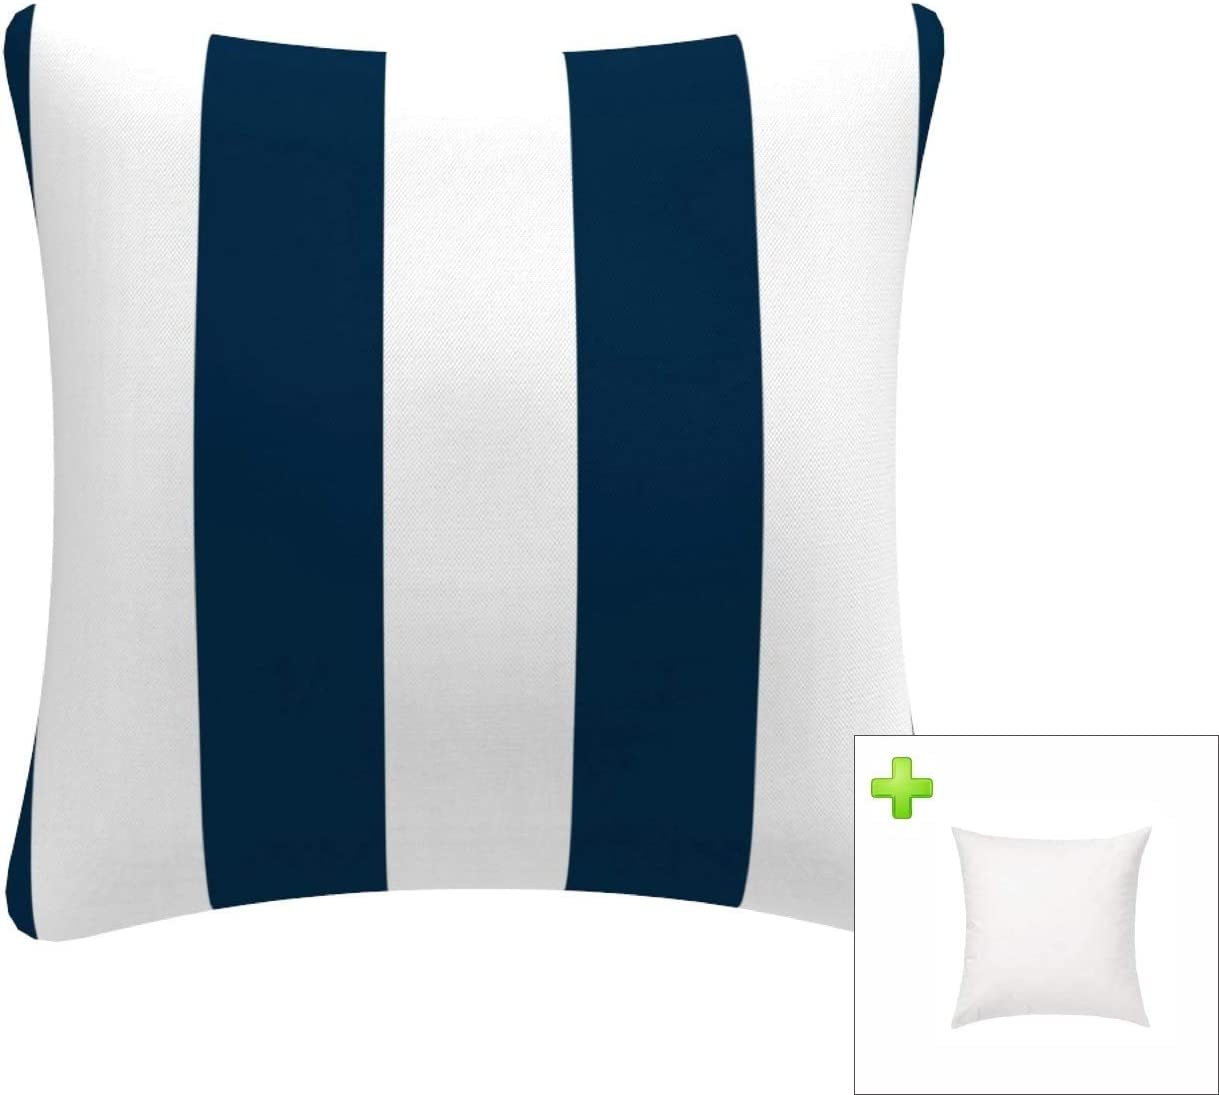 FBTS Prime Outdoor Decorative Pillows with Insert Navy and White Stripe  Patio Accent Throw Pillows 20x20 Inch Square Toss Pillows for Couch Bed  Sofa ...